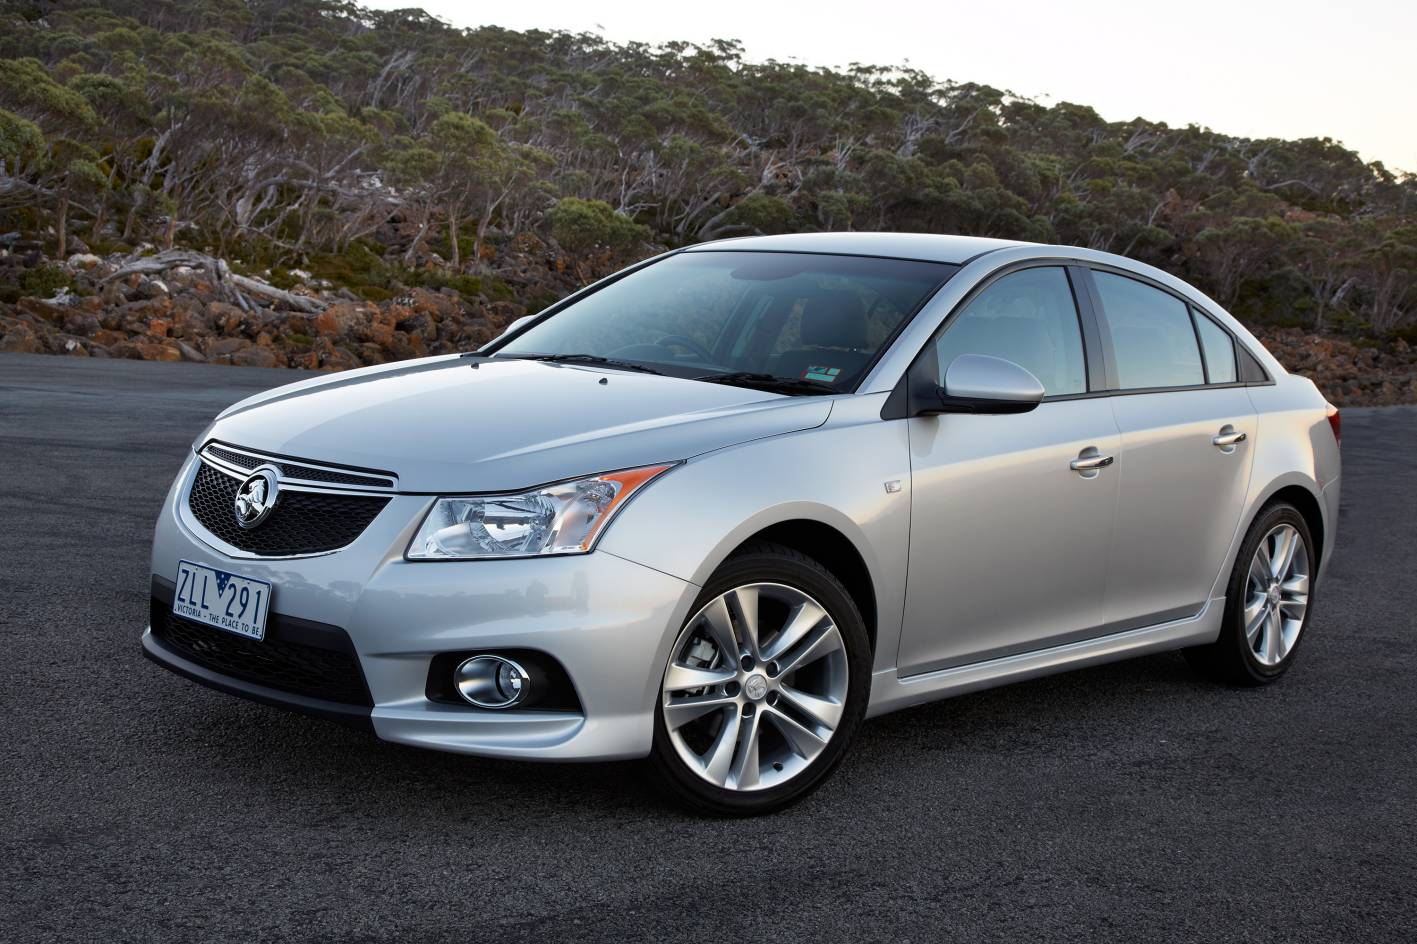 2014 Holden Cruze Sri V Sedan